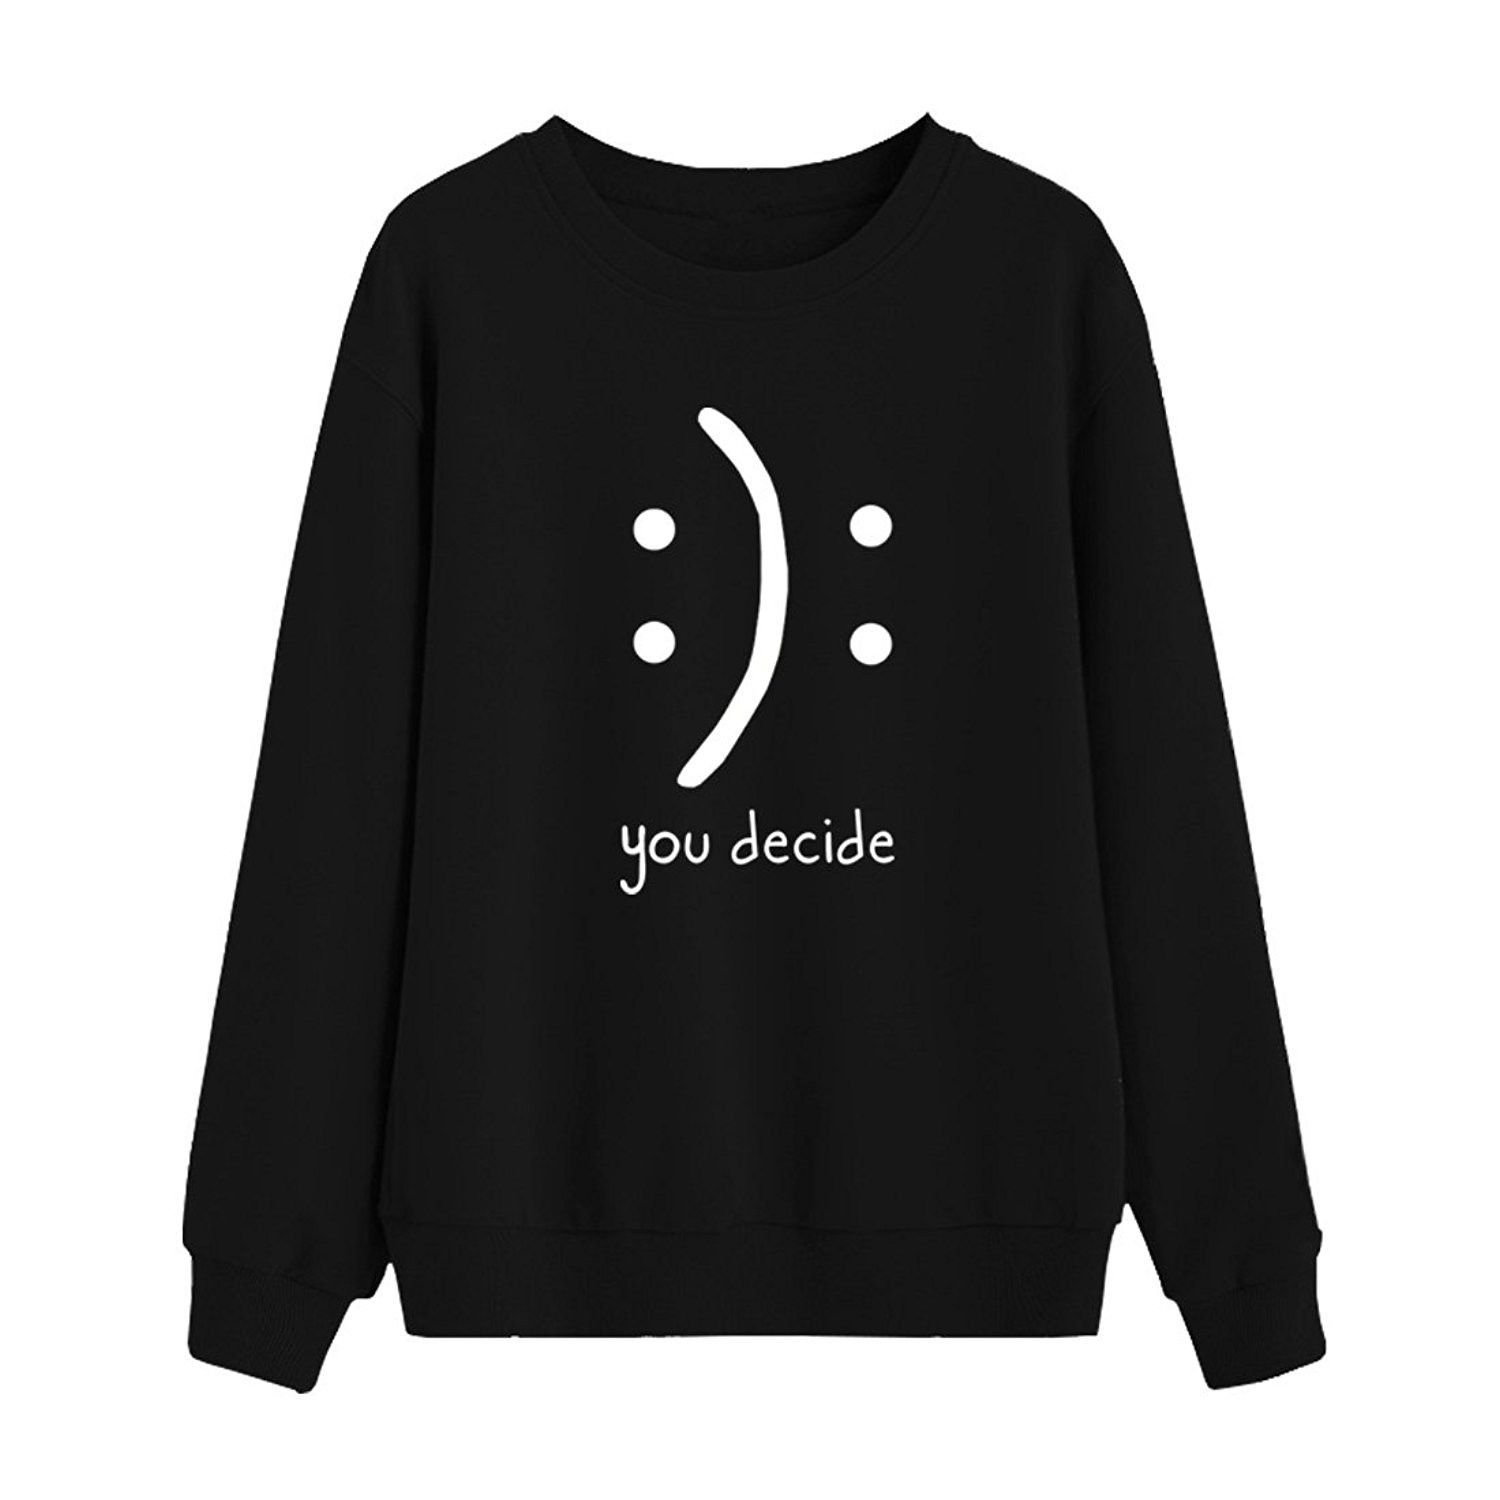 Women Round Neck Sweaters Graphic Cute Pullover Long Sleeve Funny Sweatshirts Black Cr187cc5dxm Funny Sweatshirts Funny Outfits Sweatshirts [ 1500 x 1500 Pixel ]